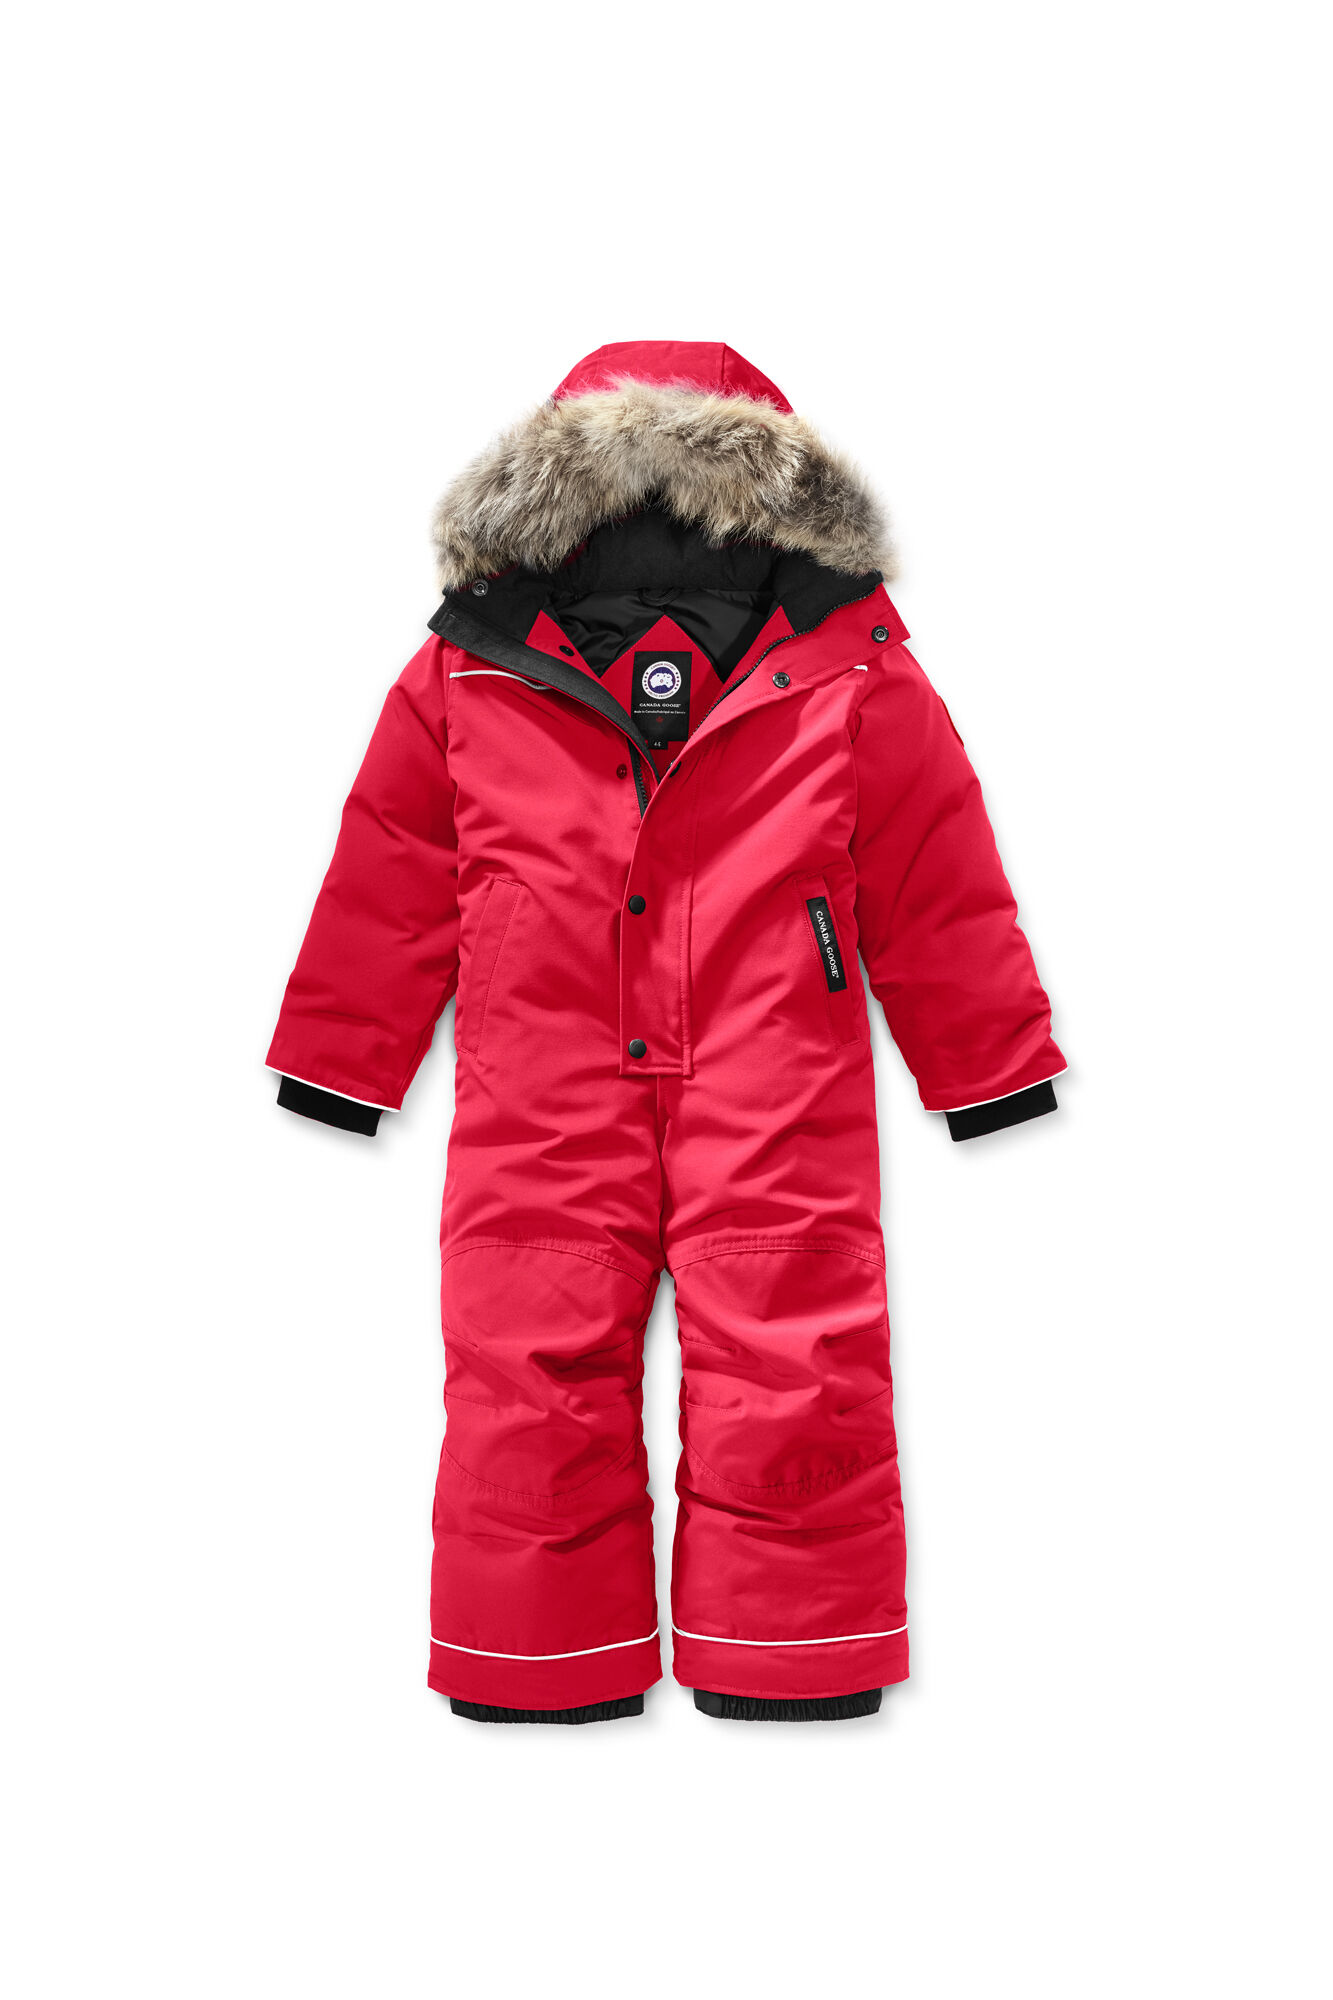 Canada Goose kids outlet cheap - Kids Outerwear | Parkas Pants Gloves | Canada Goose?